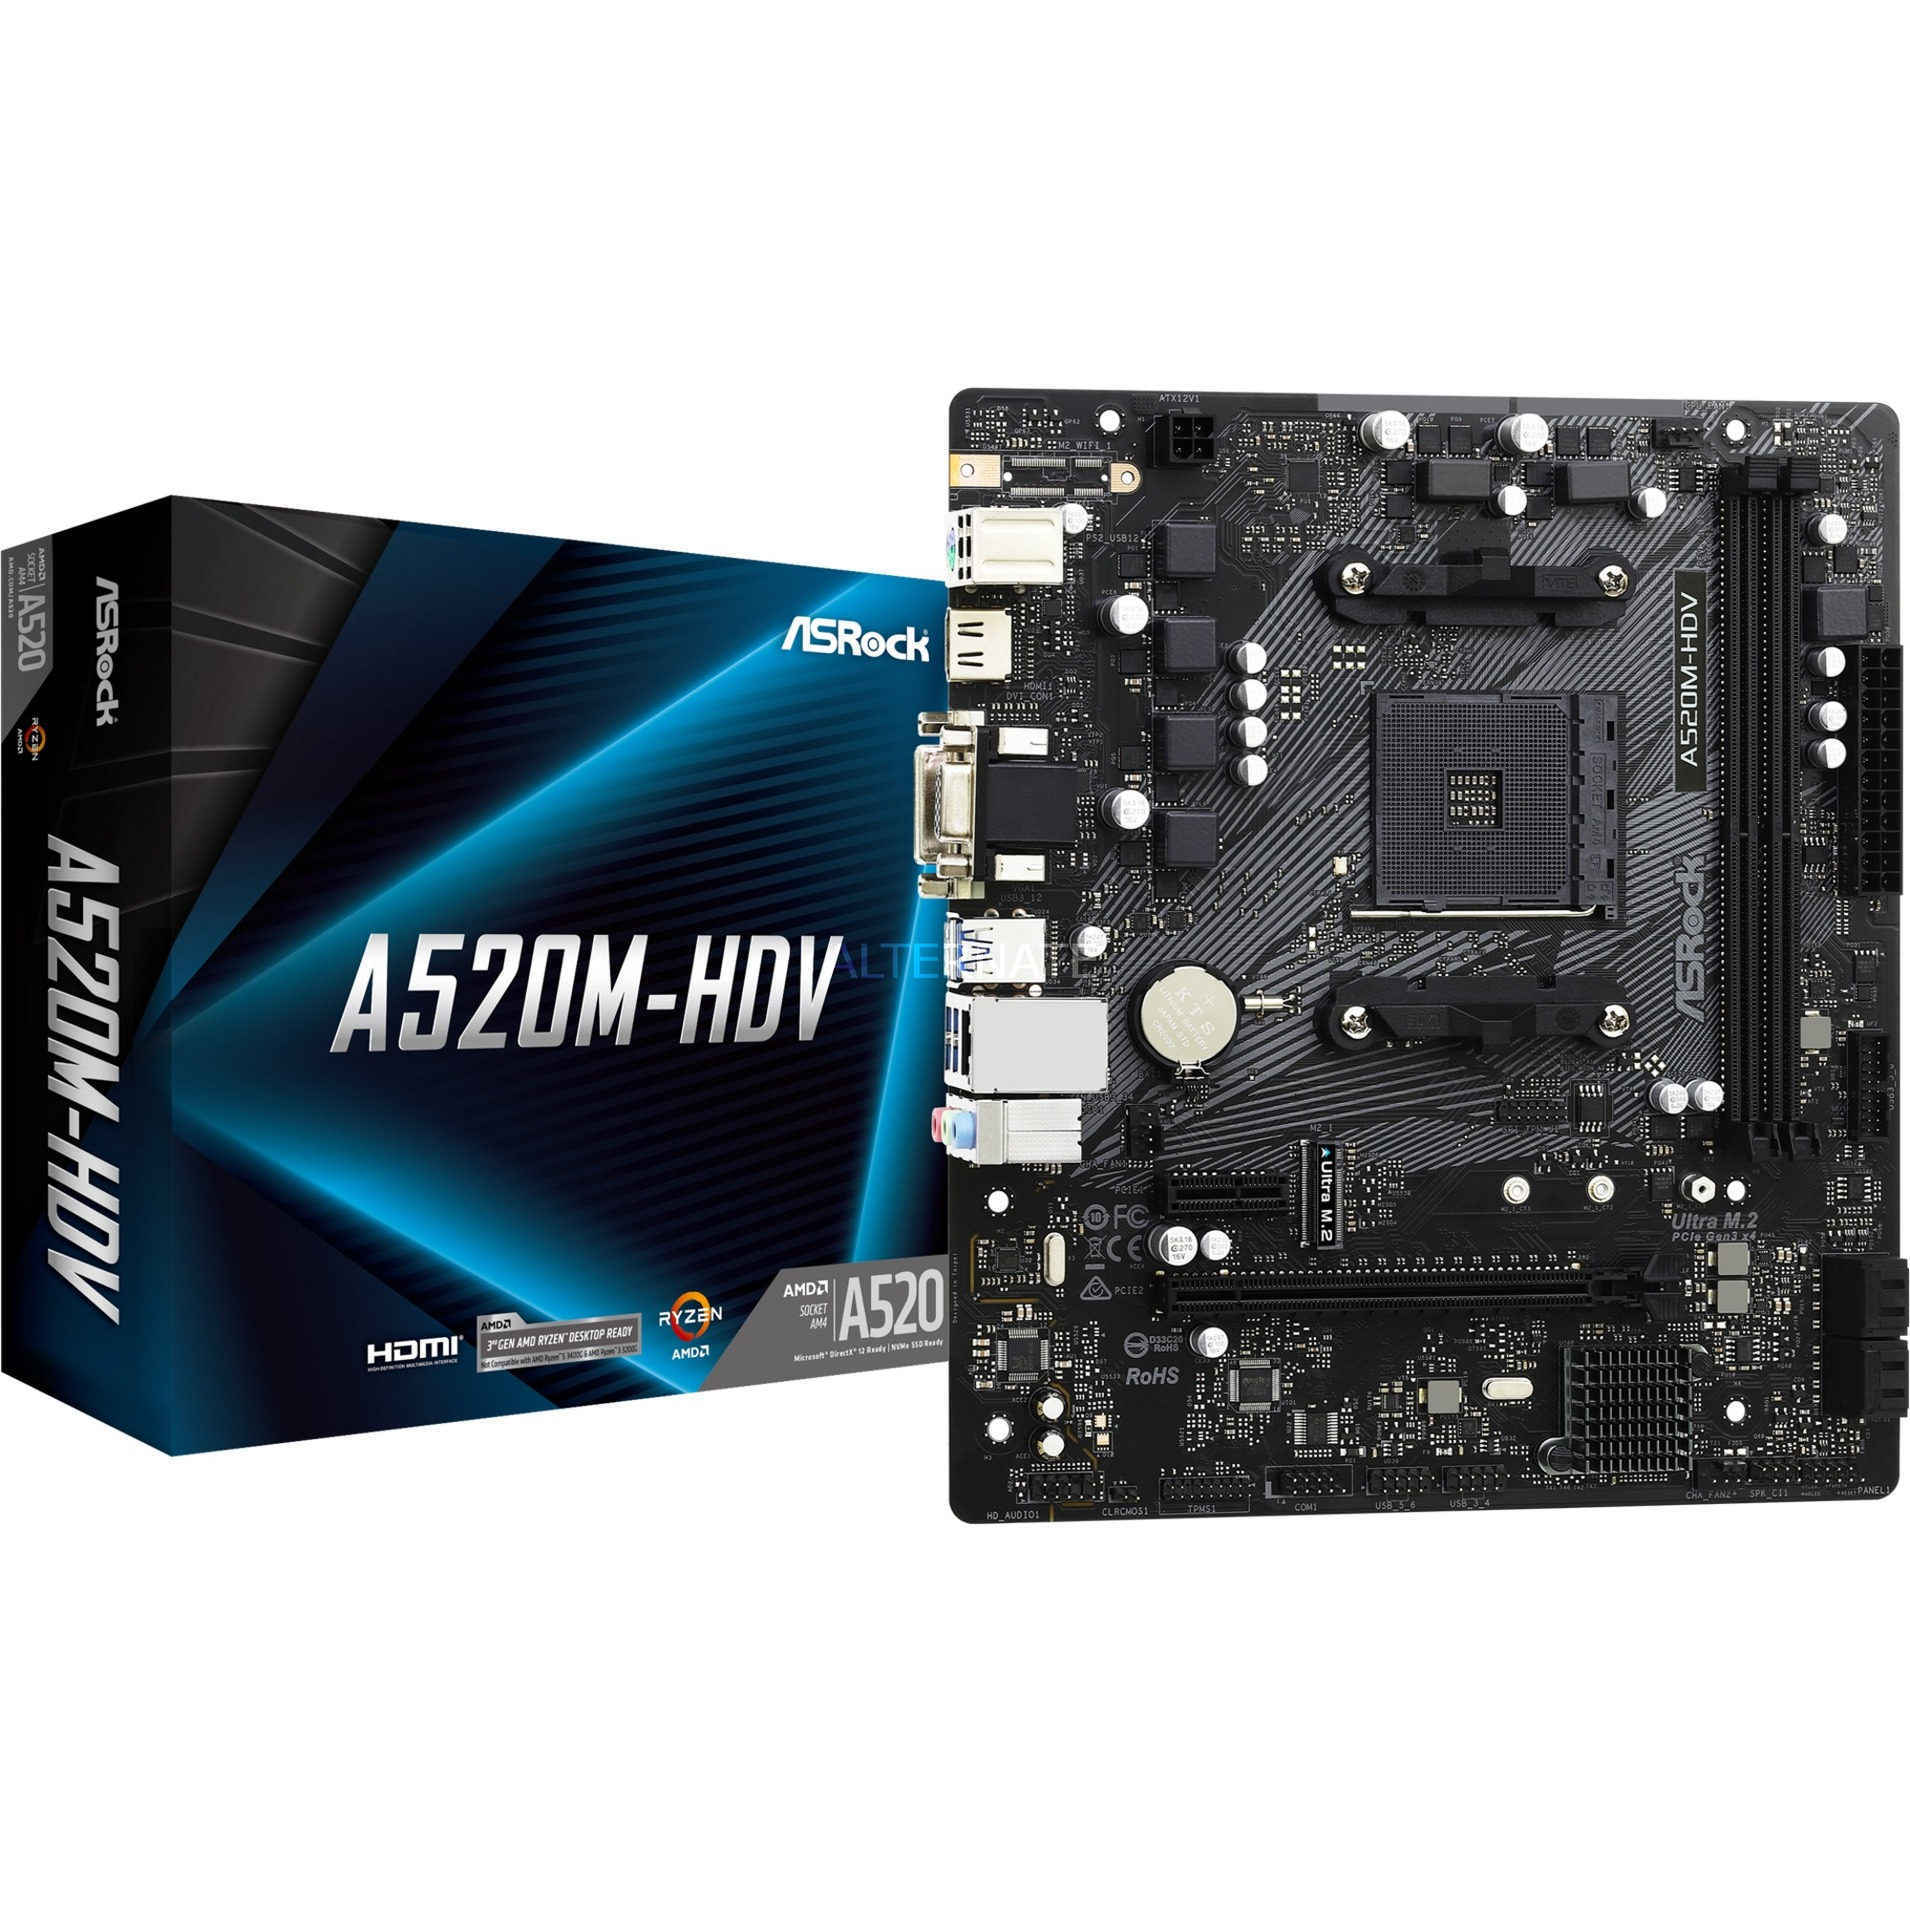 Image of A520M-HDV, Mainboard